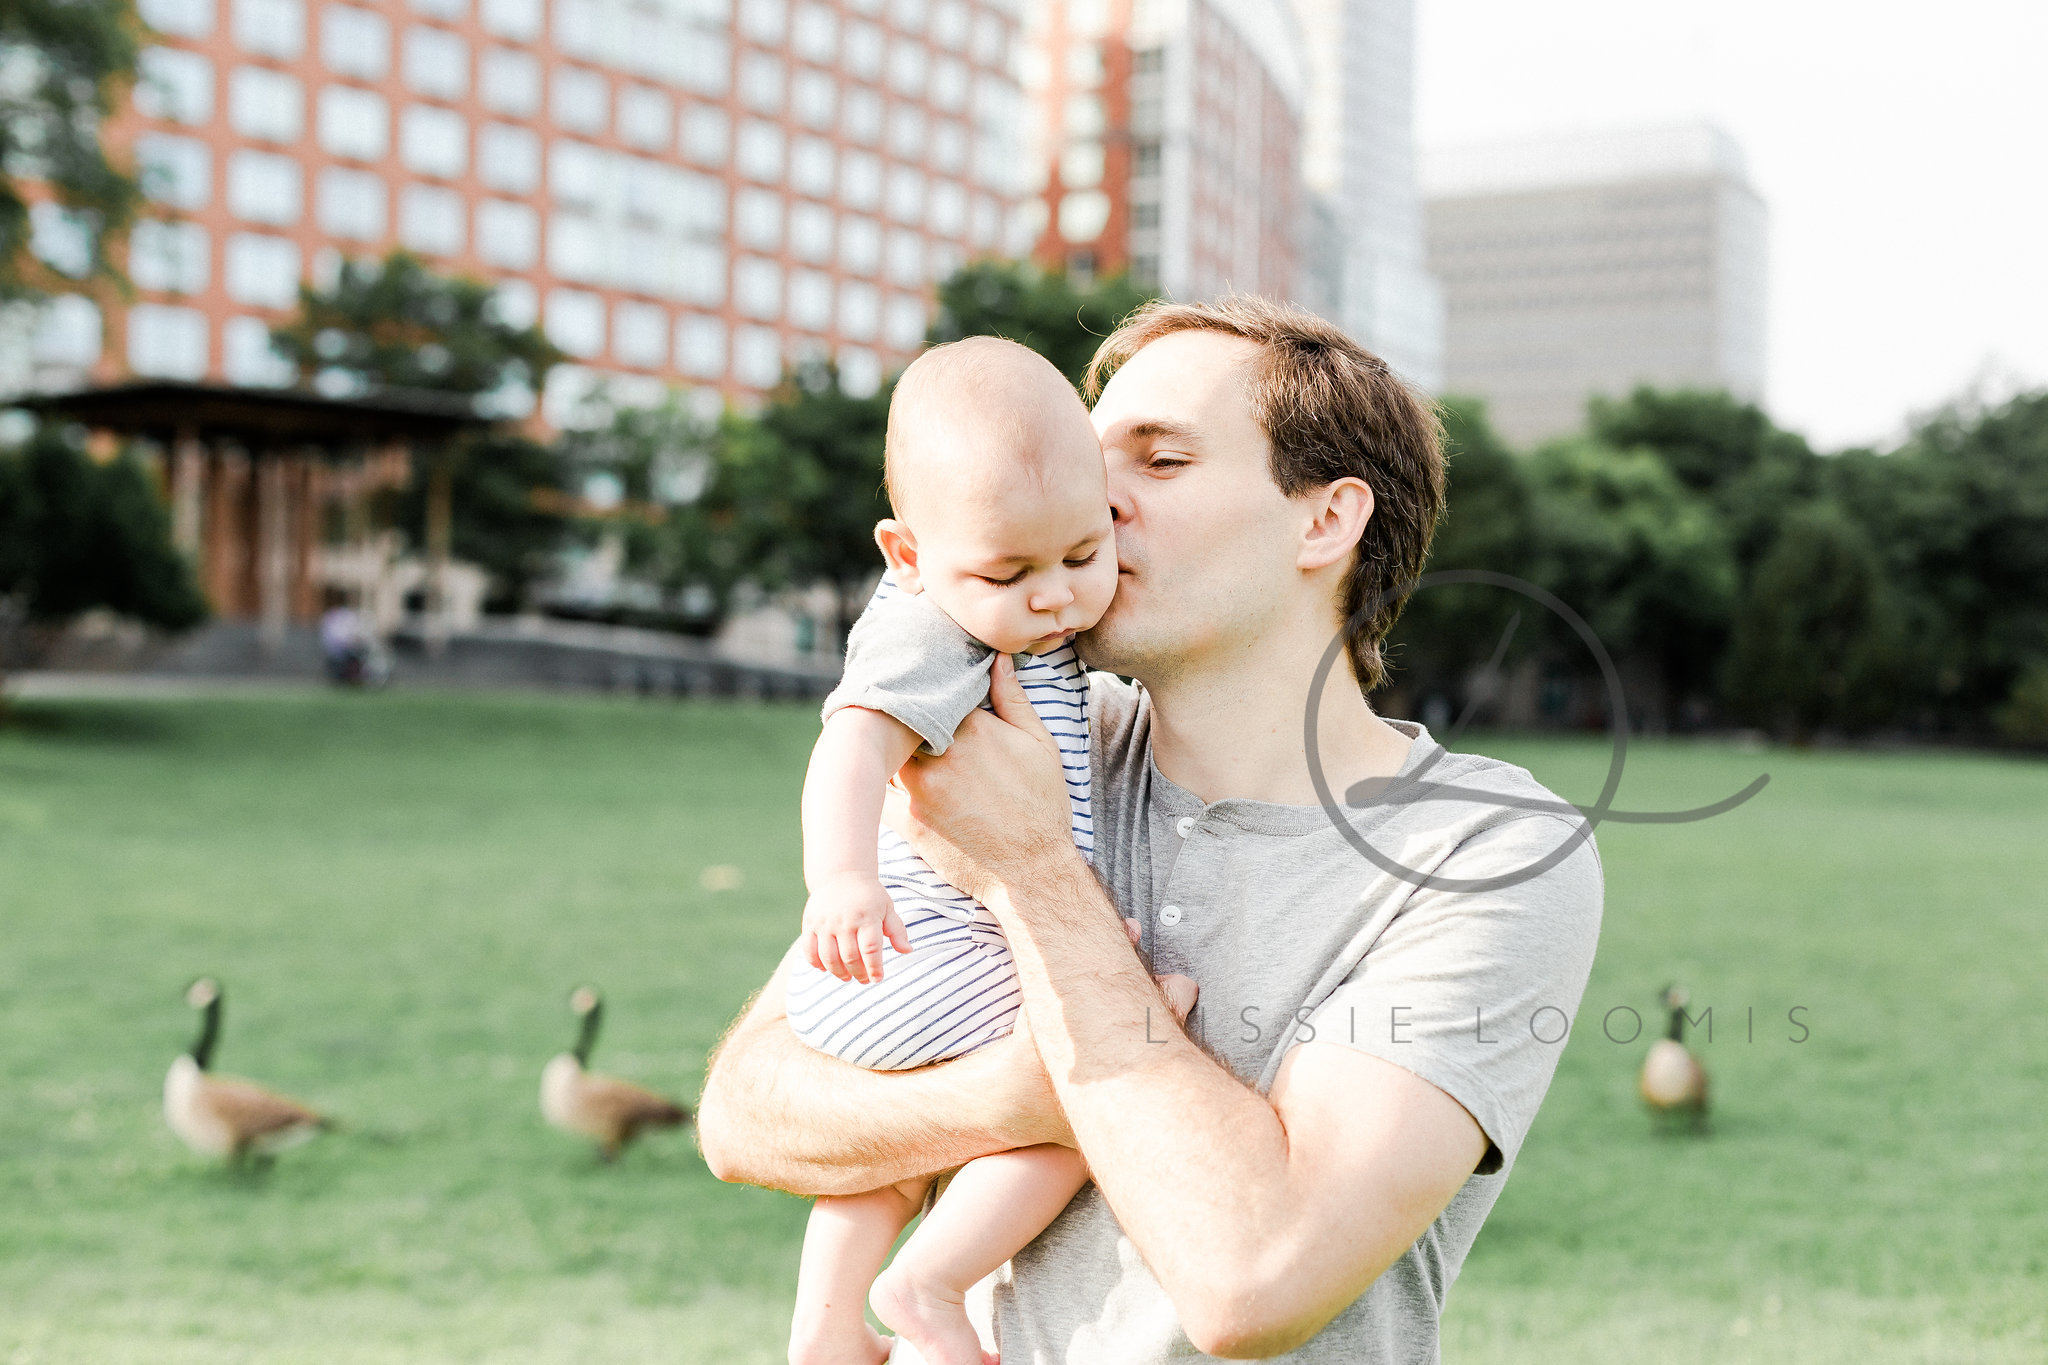 lissie-loomis-photo-newyorkcity-family-photography-baby-photographer-brooklyn32.JPG